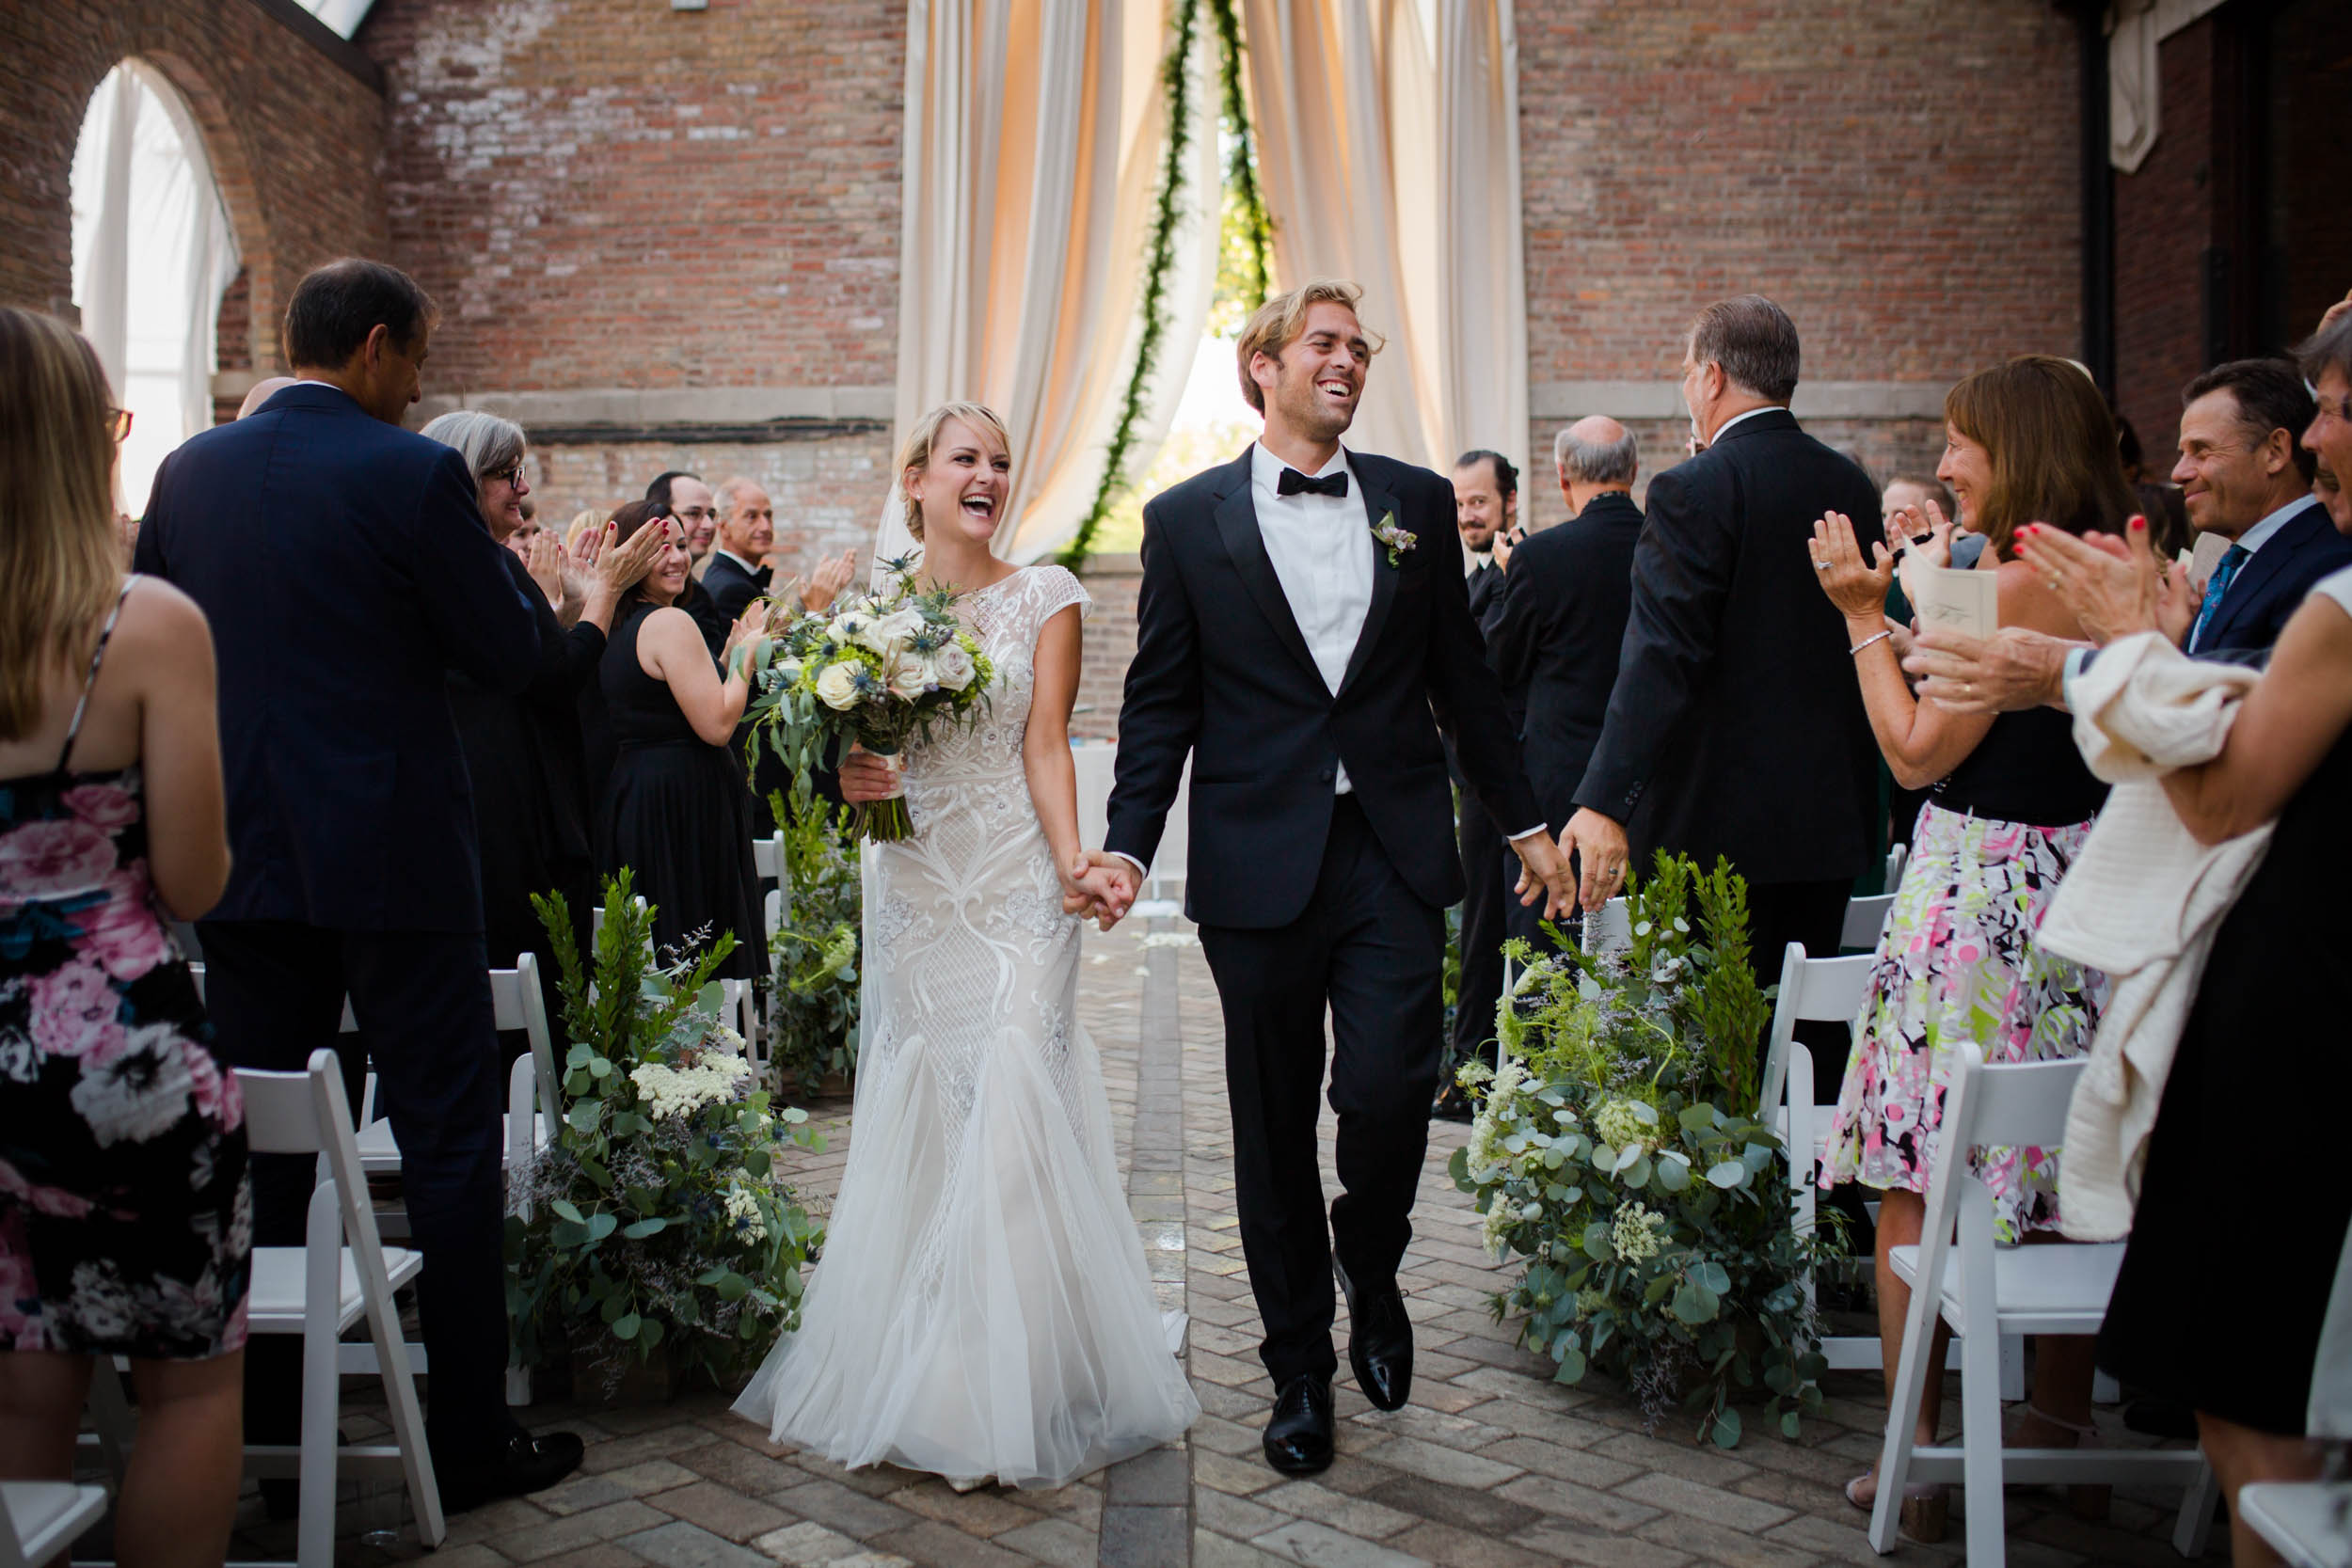 Amy and Troy had a romantic outdoor wedding ceremony at Bridgeport Art Center in Chicago.